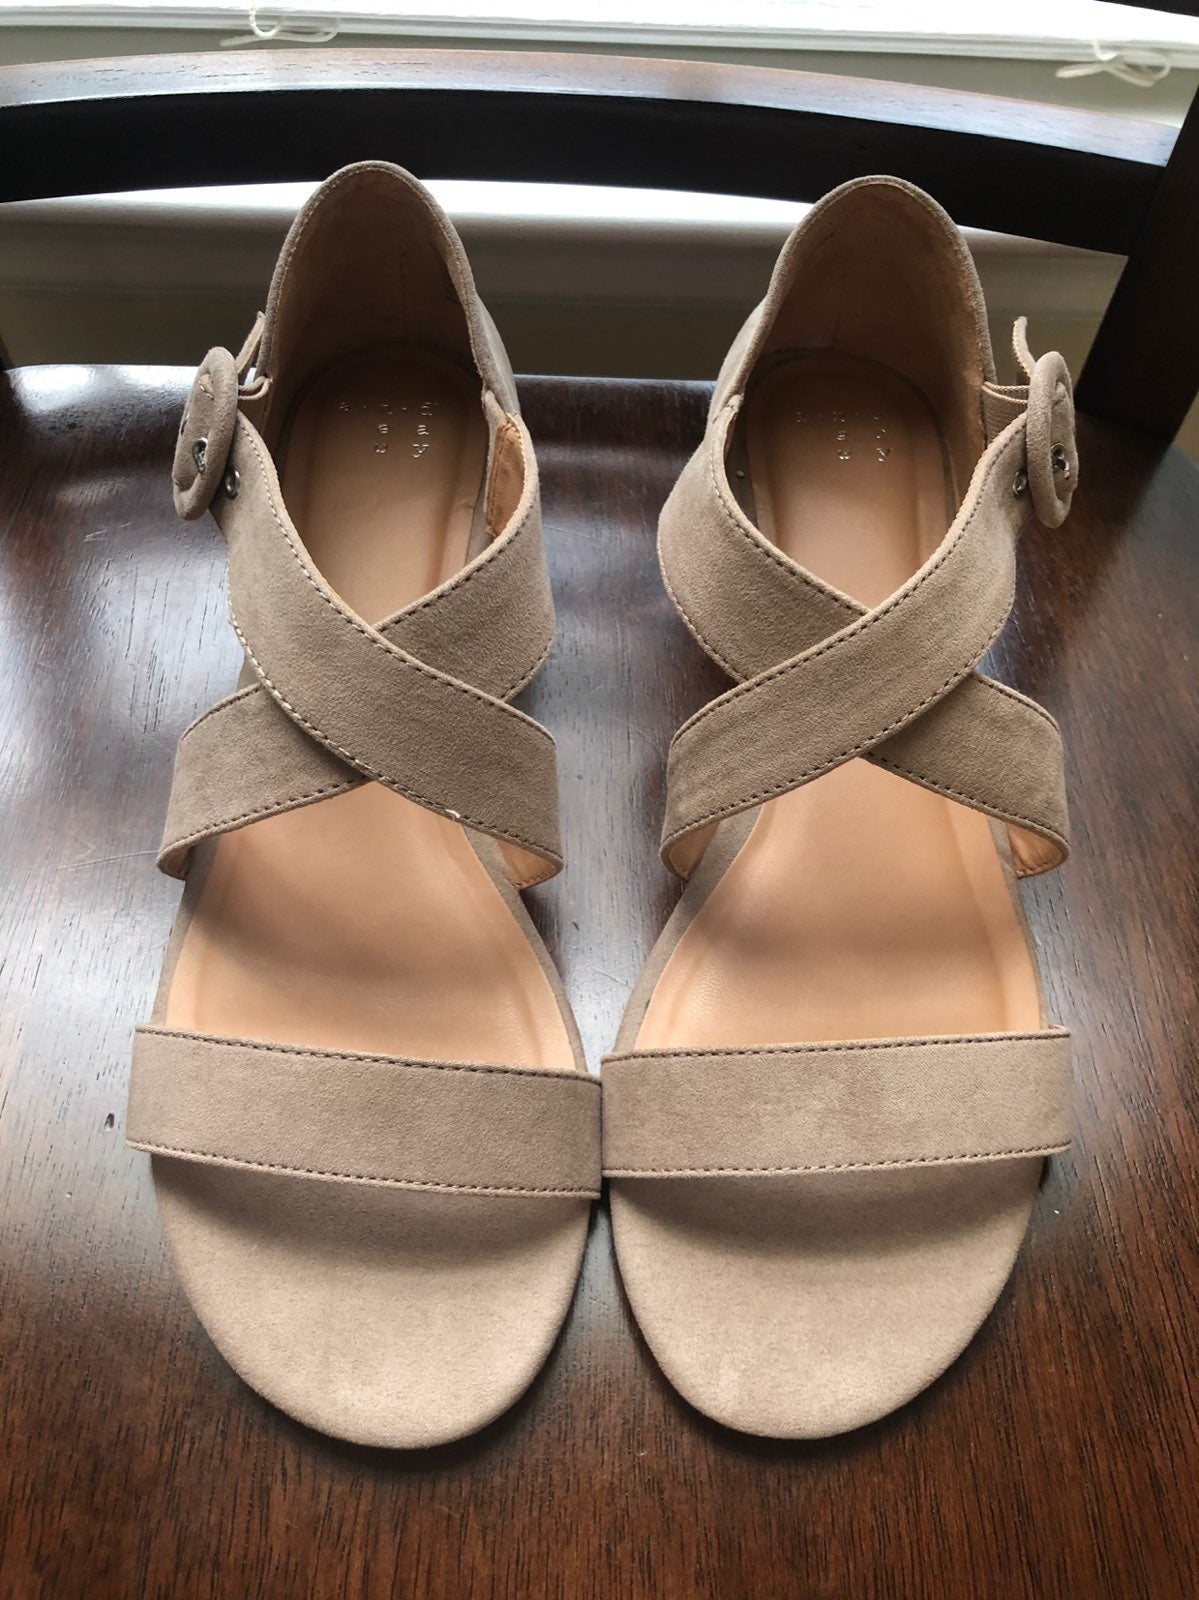 Womens sandals in size 9